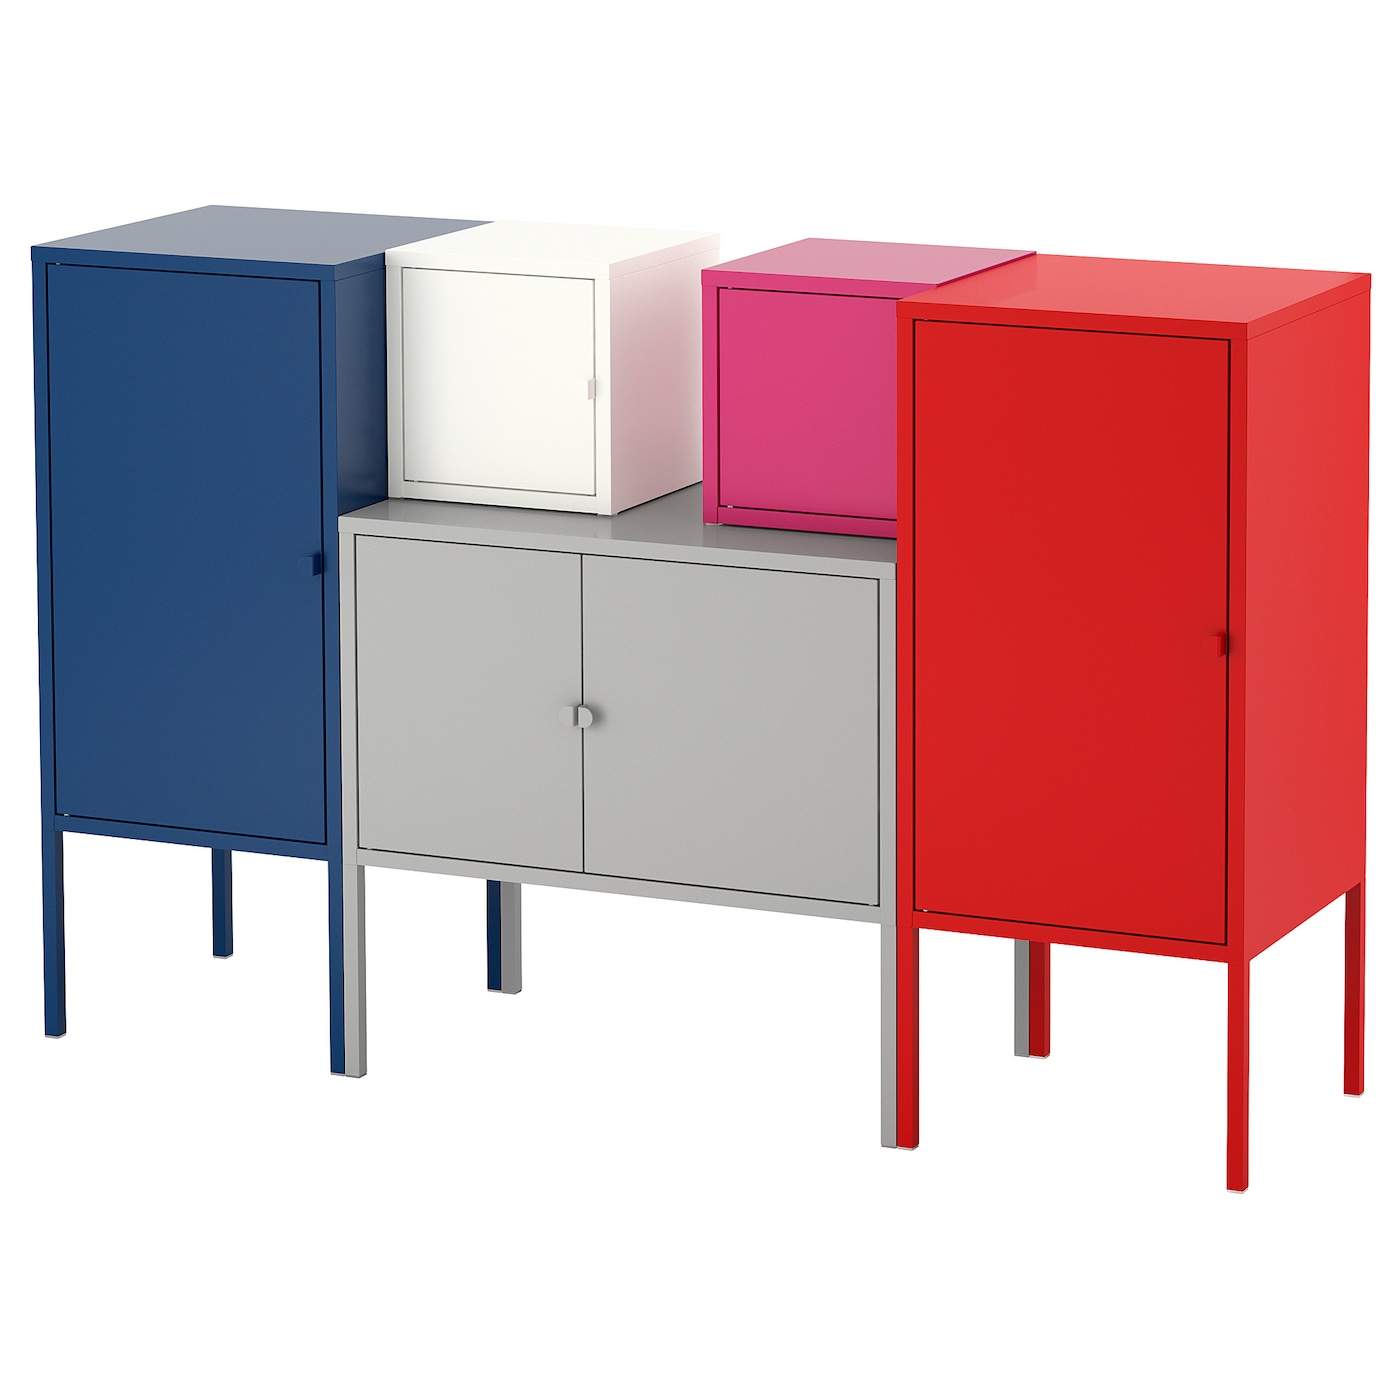 lixhult combinaison de rangement bleu fonc gris blanc rose rouge 130 x 82 cm ikea. Black Bedroom Furniture Sets. Home Design Ideas